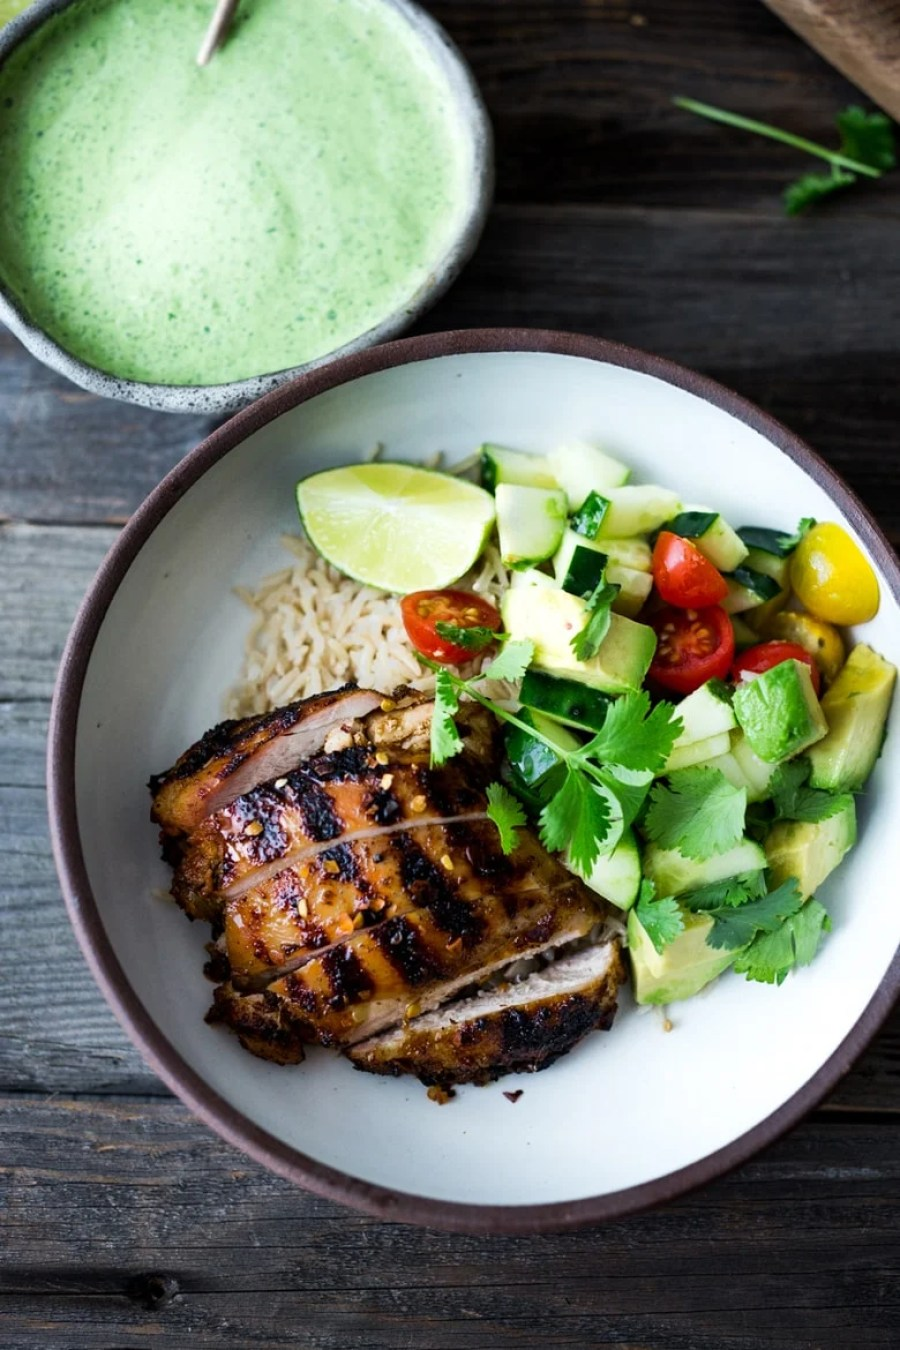 Simple, delicious Grilled Peruvian Chicken with Green Sauce and an Avocado Tomato Cucumber Salad. Can be made in 40 minutes- perfect for weeknights!